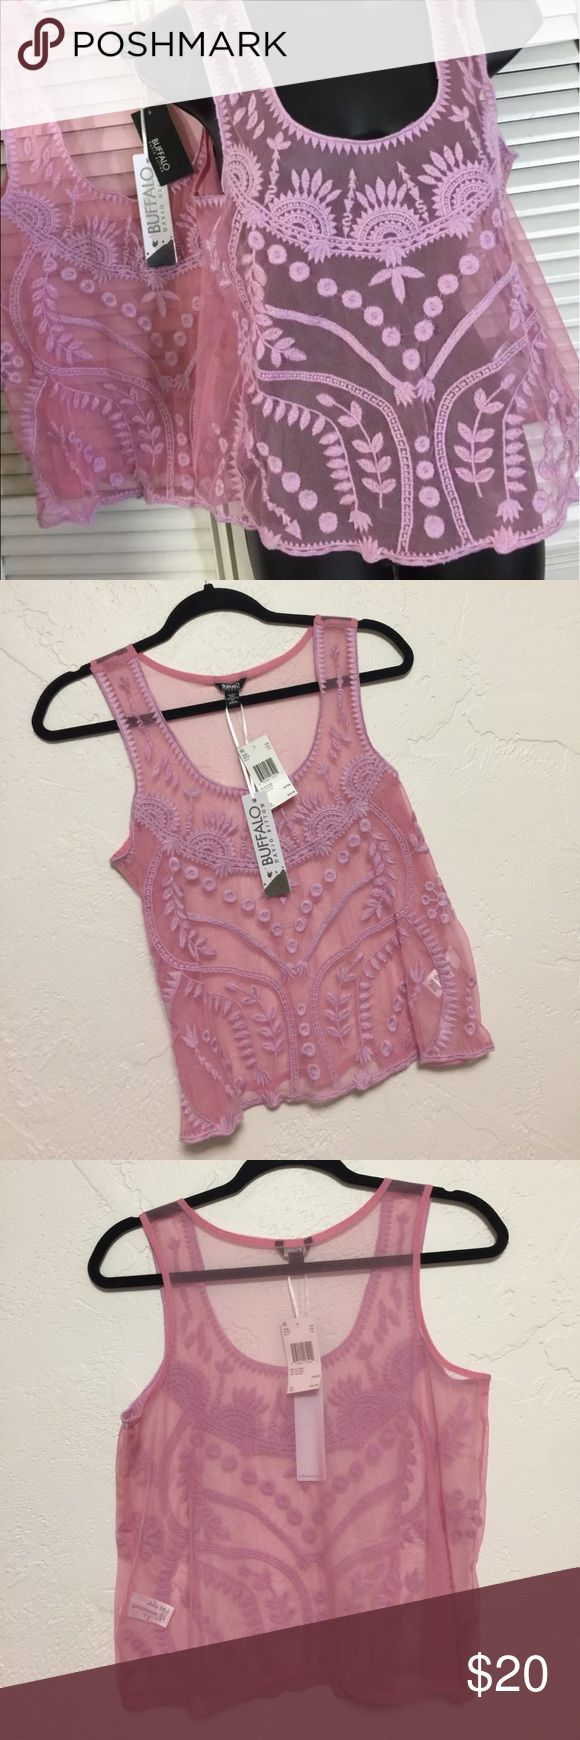 Buffalo by David Bitton Sheer Embroidered Top Sz S Buffalo by David Bitton Sheer embroidered top , Sz S, Lilac Pink, polyester Sheer with embroidered design, NWT Buffalo David Bitton Tops Tank Tops